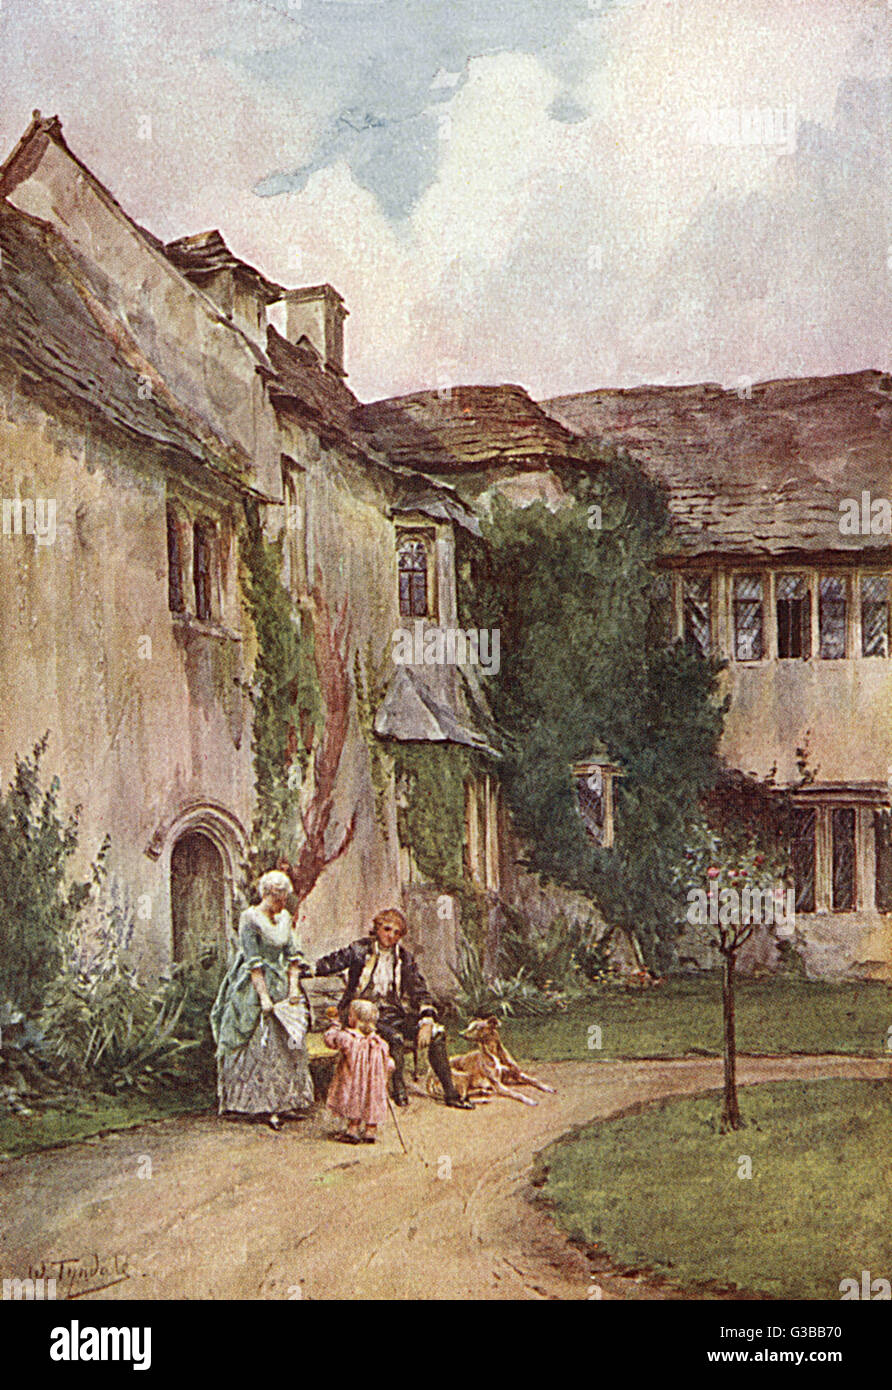 People outside an old manor  house at Westwood, Dorset        Date: 18th century - Stock Image